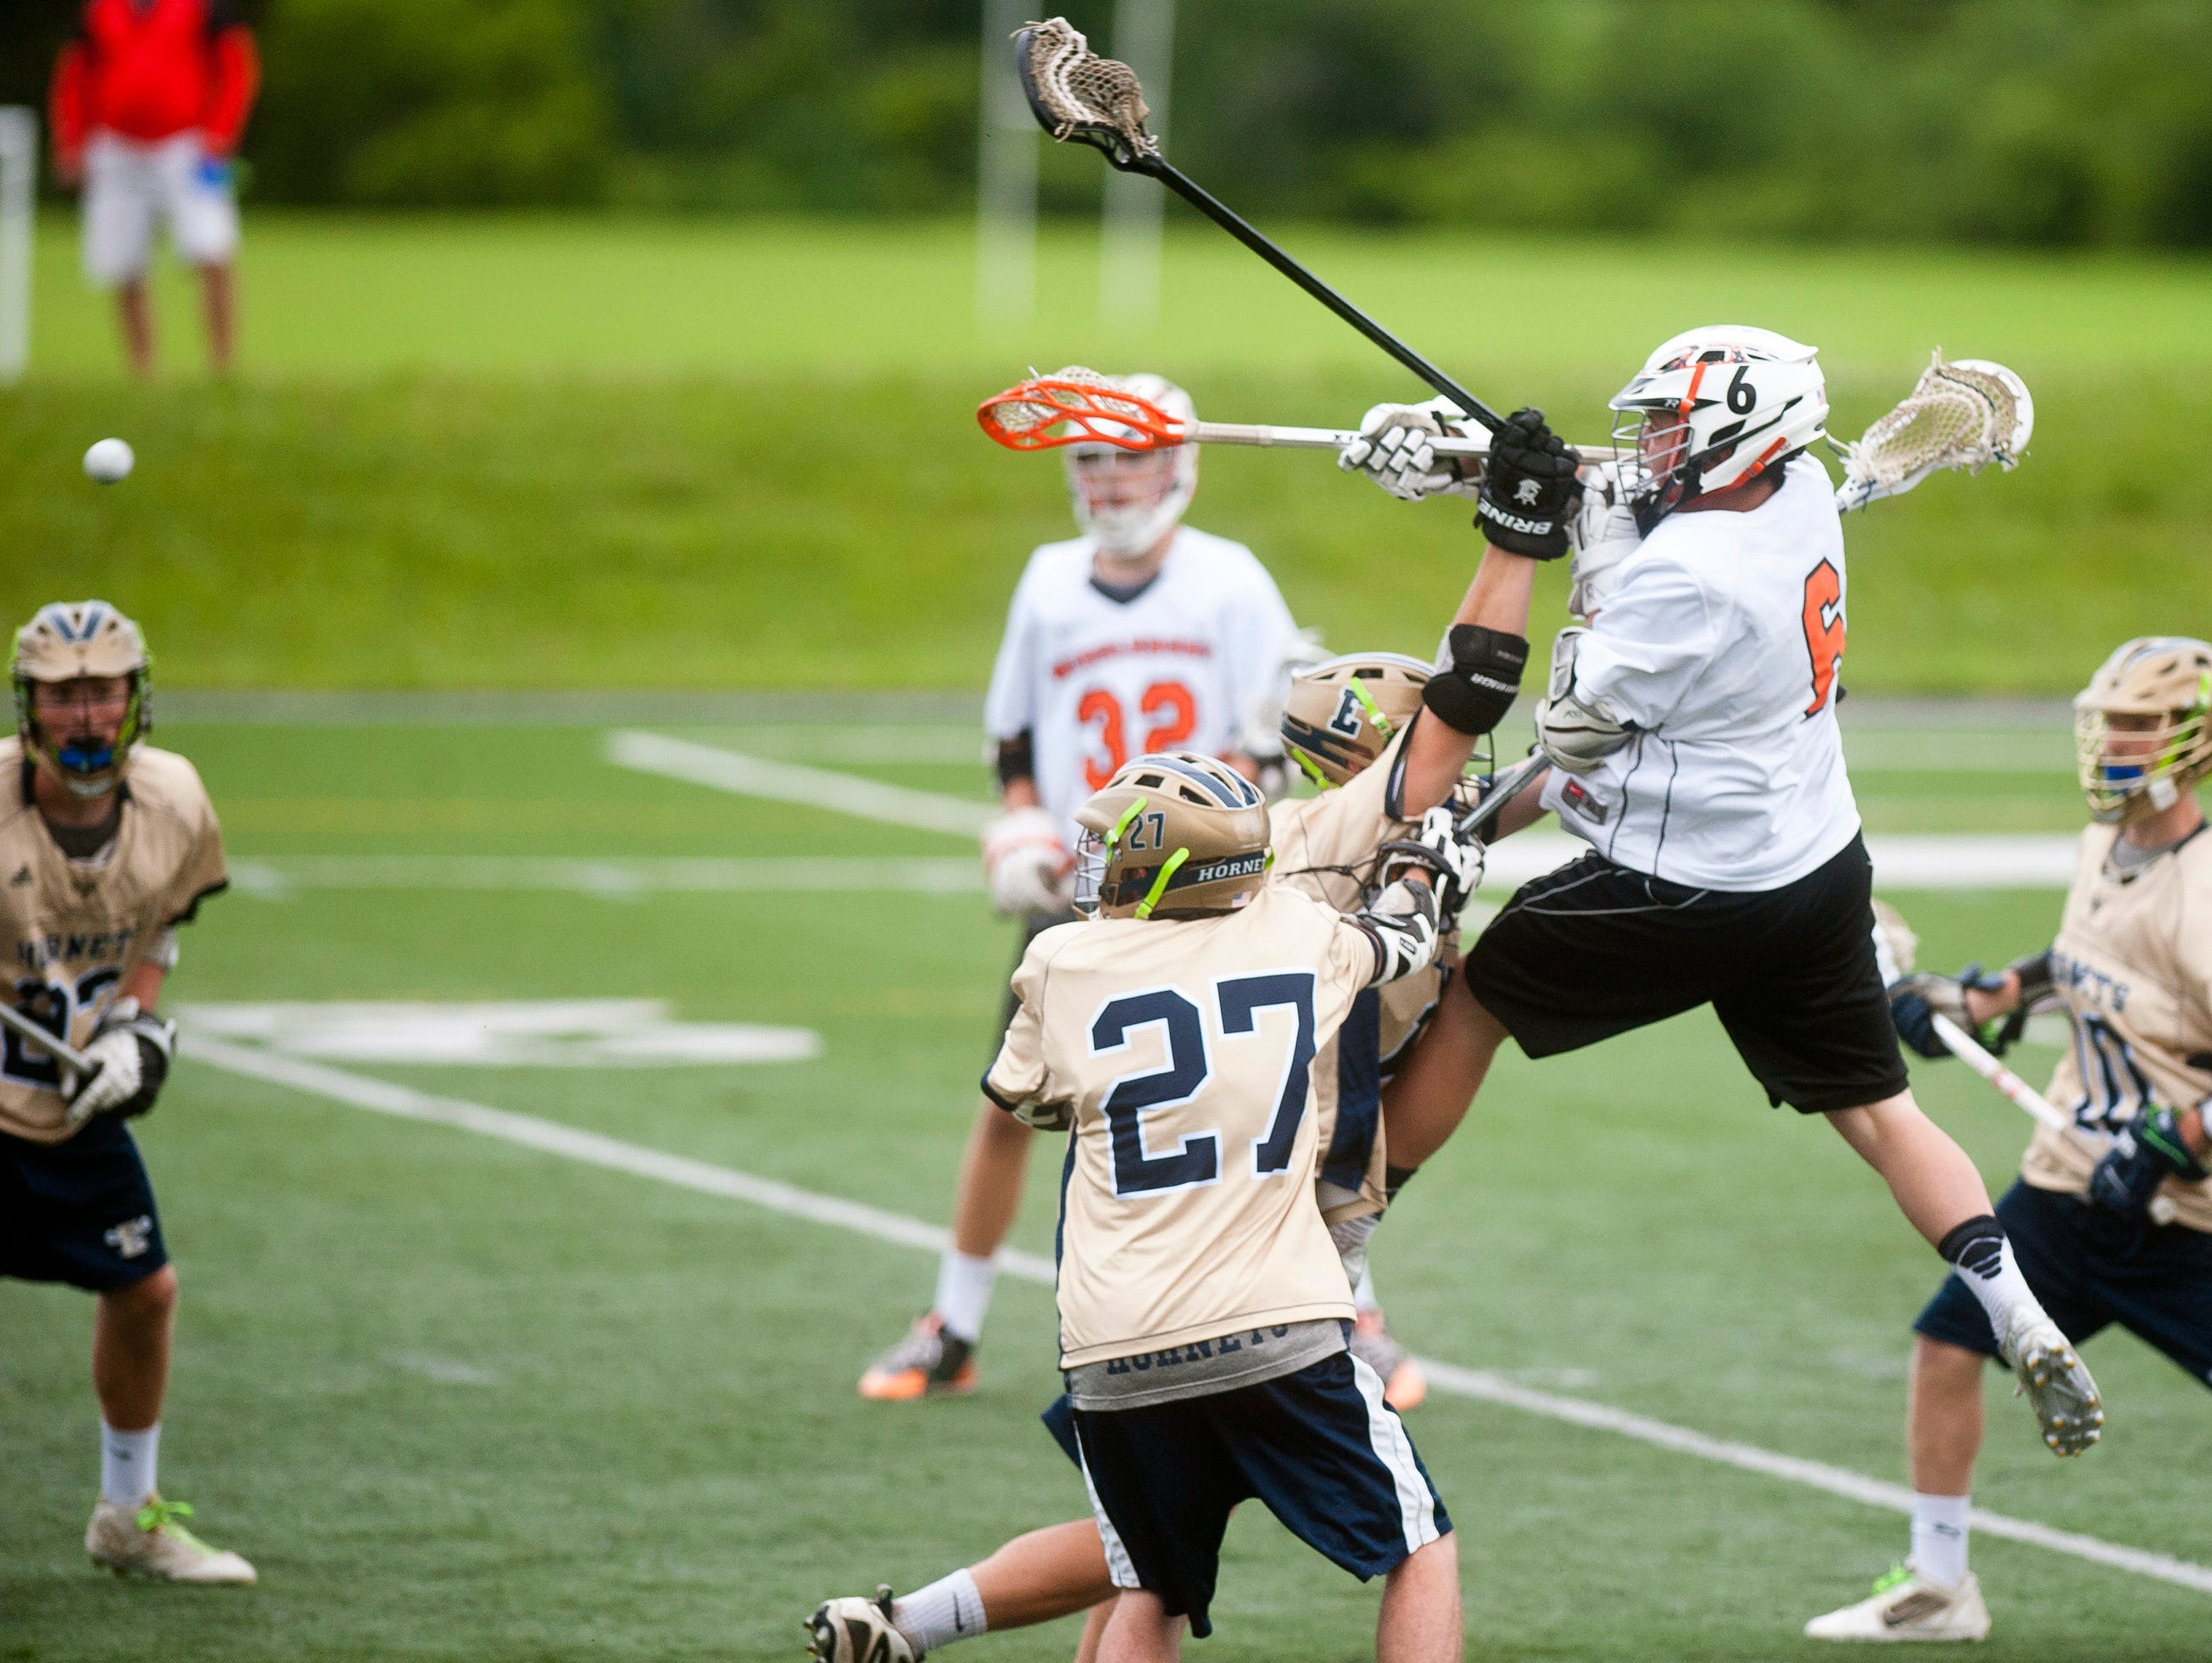 Middlebury's Jack Hounchell (6) leaps to unleash a shot back at the Essex goal during the teams' Division I boys lacrosse semifinal on Tuesday at Middlebury College.